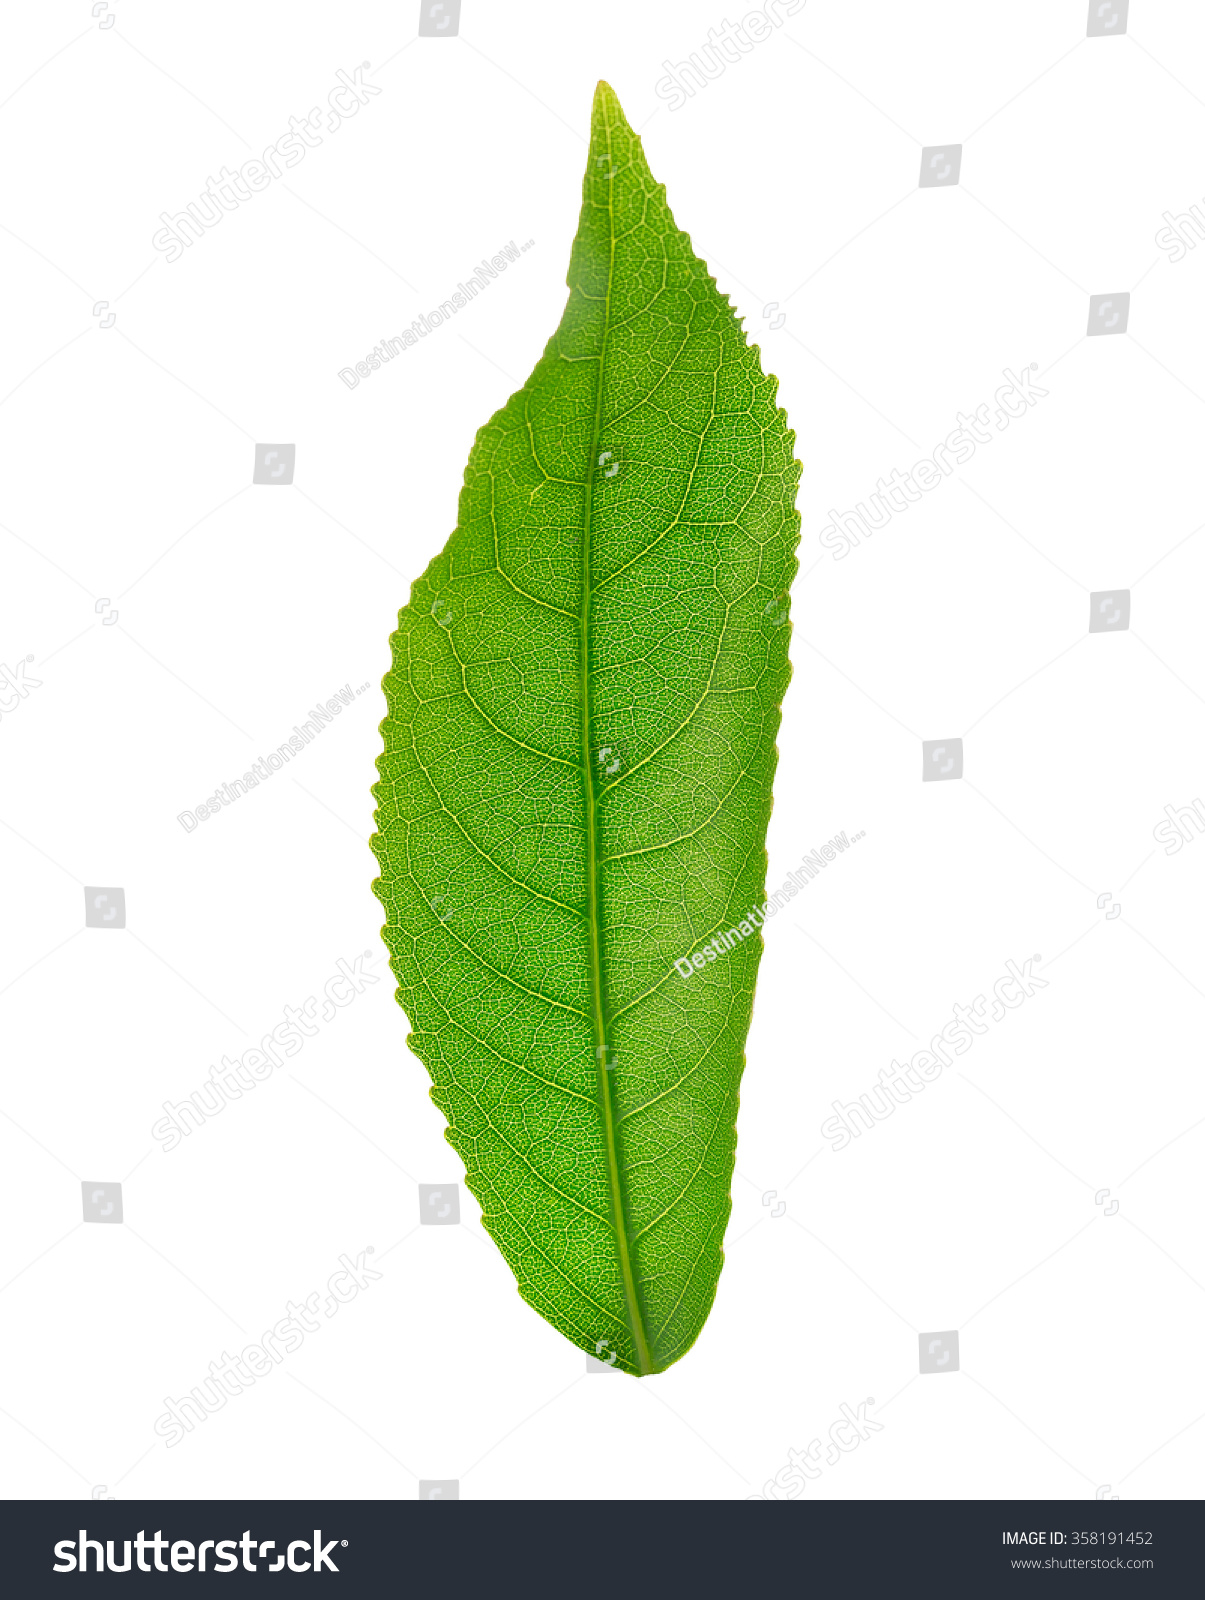 Leaf Anatomy Diagram Stock Photo Download Now 358191452 Shutterstock